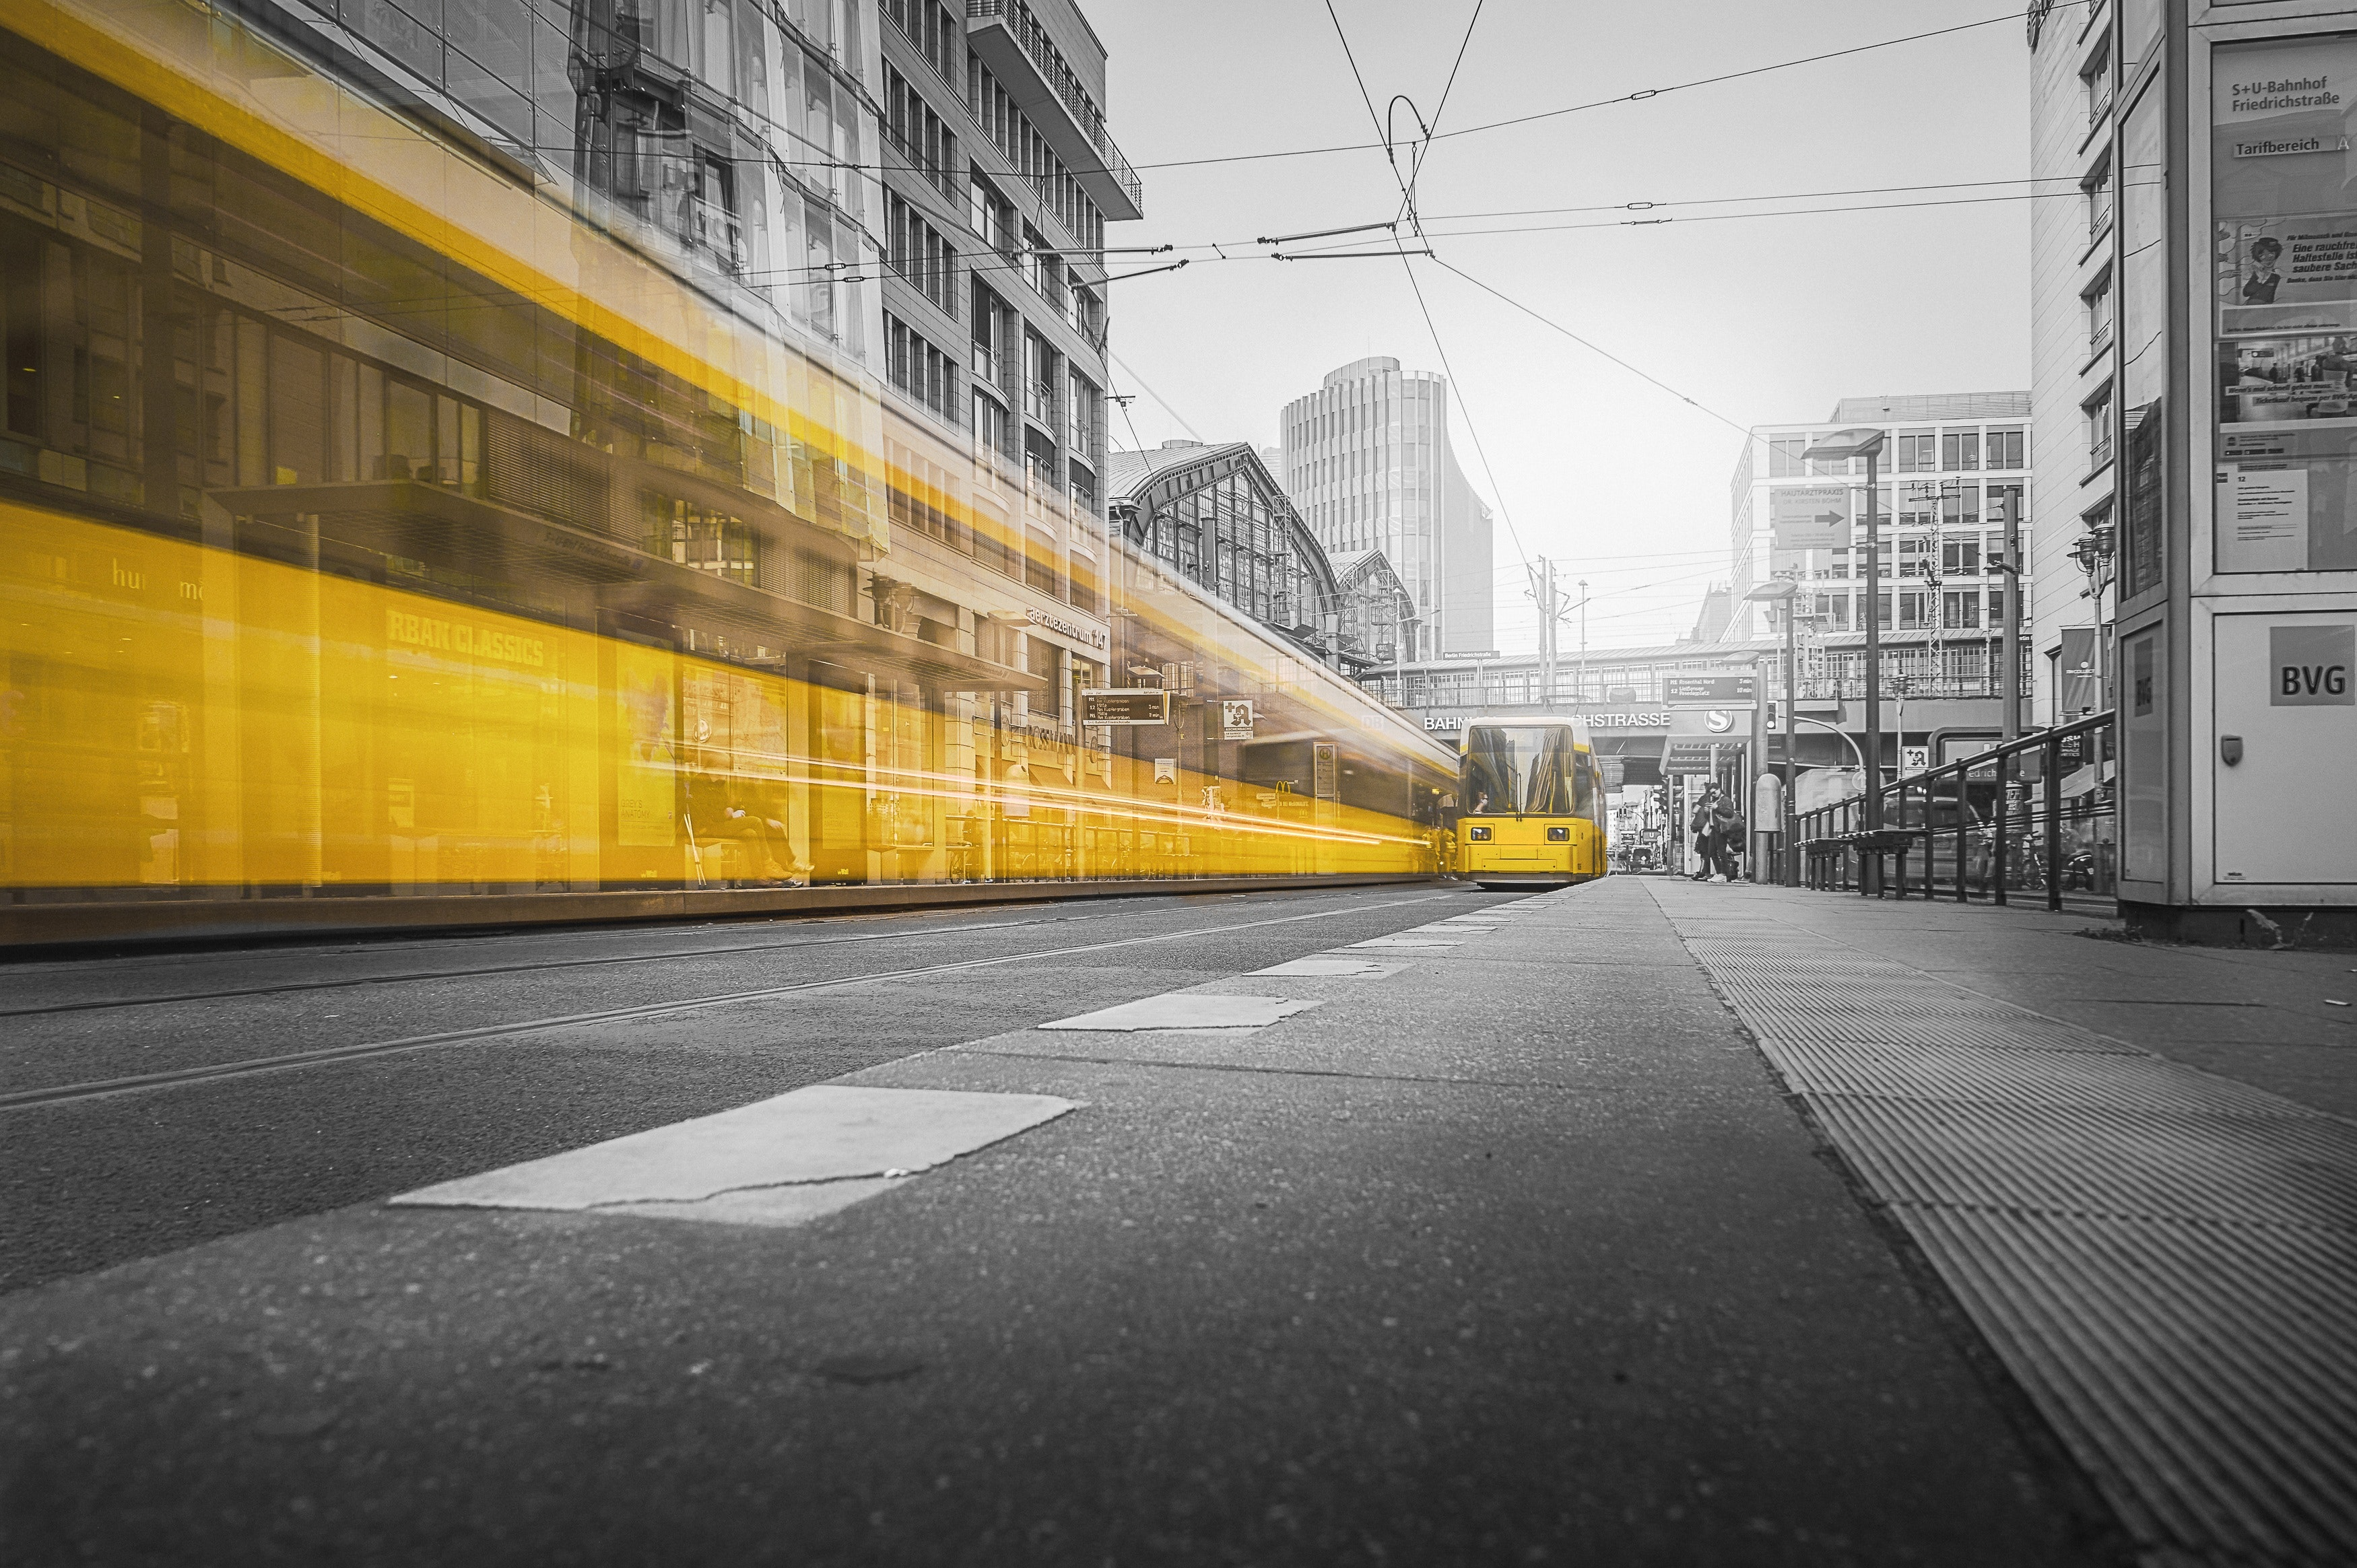 blurred image of yellow train over black and white city street